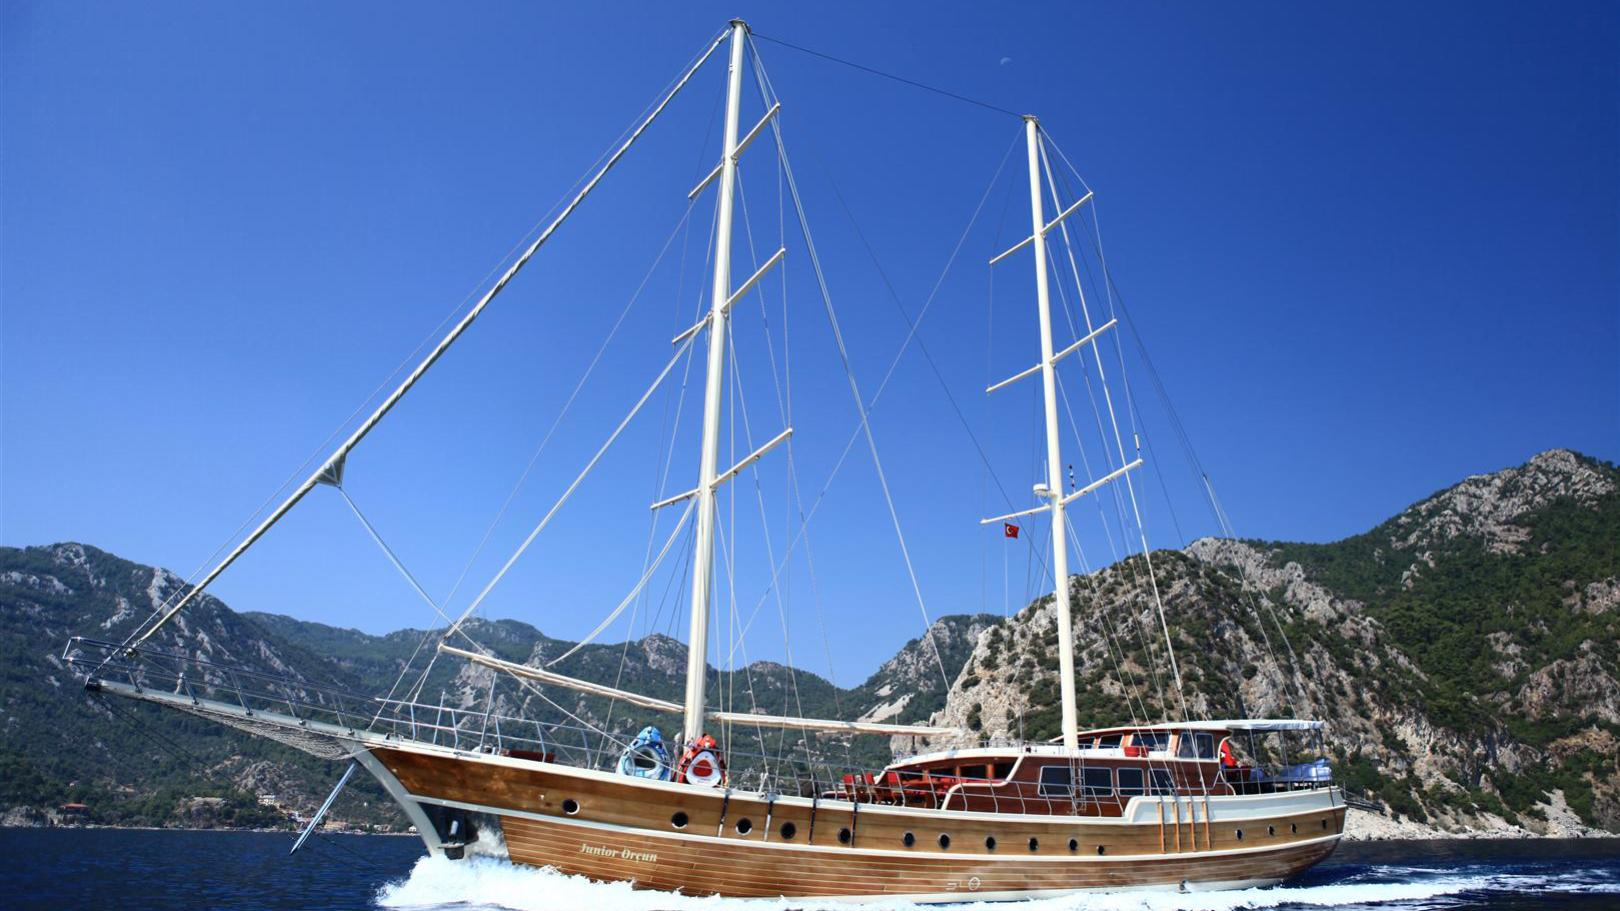 junior-orcun-yacht-for-charter-profile